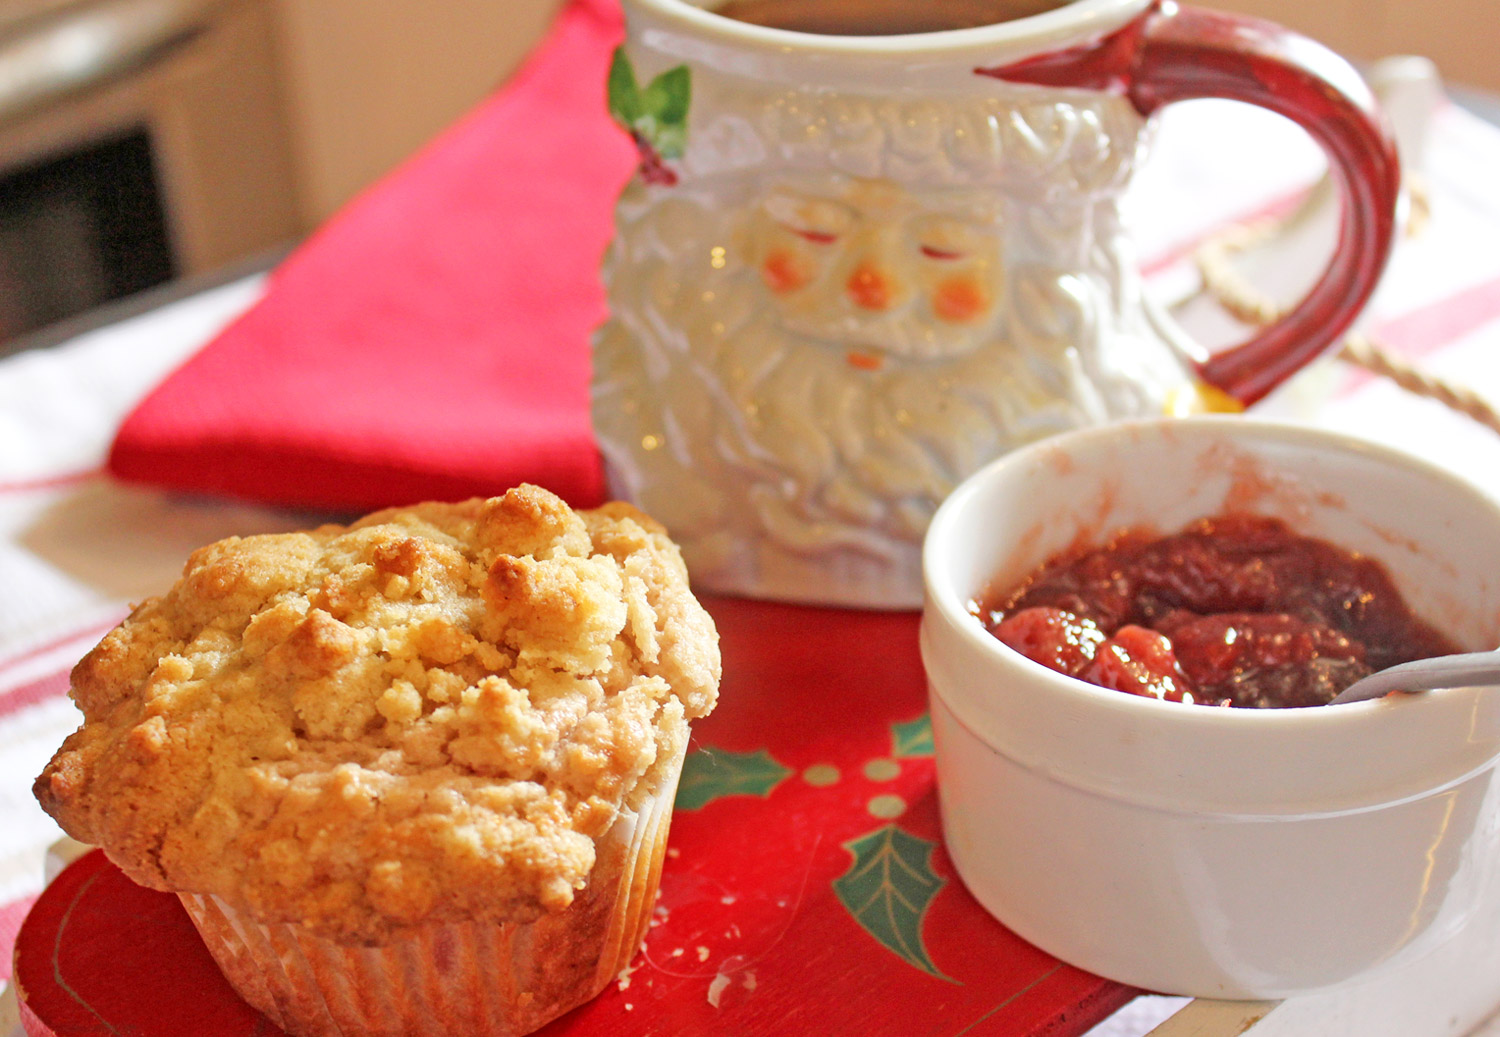 Strawberry Jam Muffin Recipe for Christmas